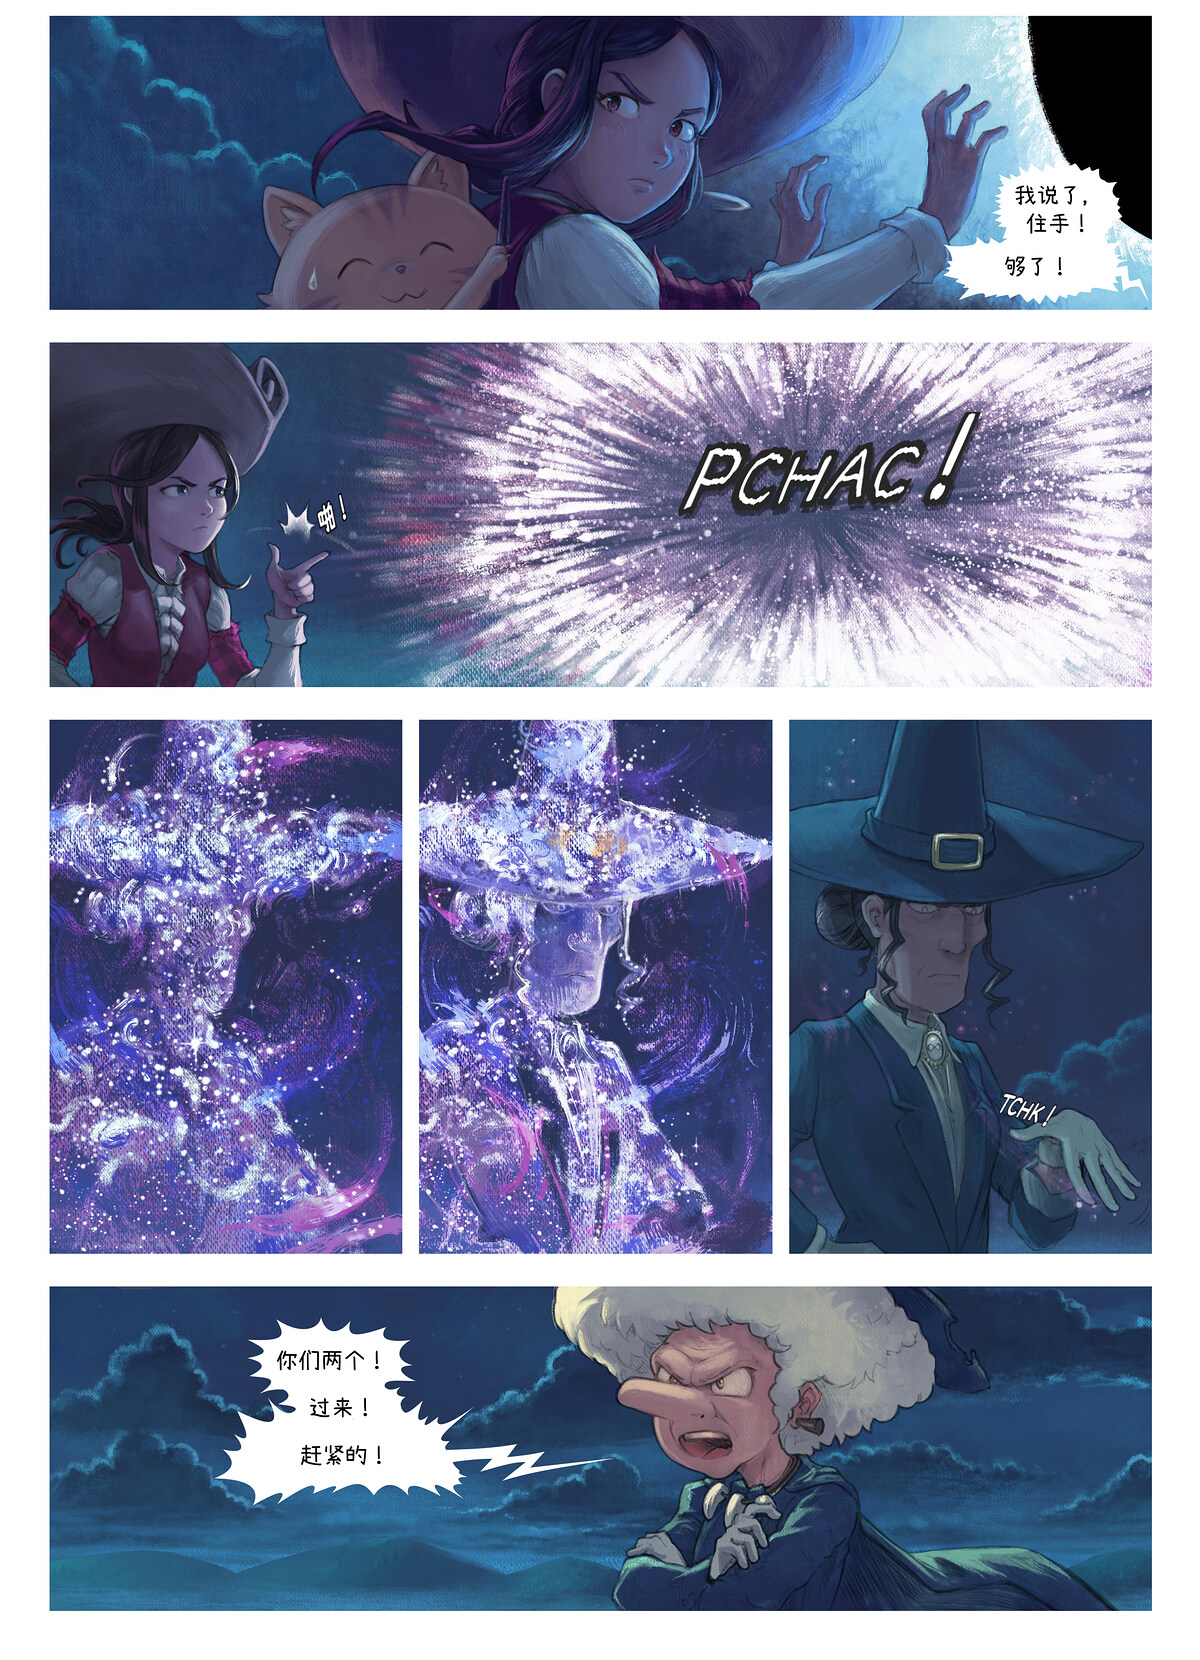 A webcomic page of Pepper&Carrot, 漫画全集 31 [cn], 页面 6